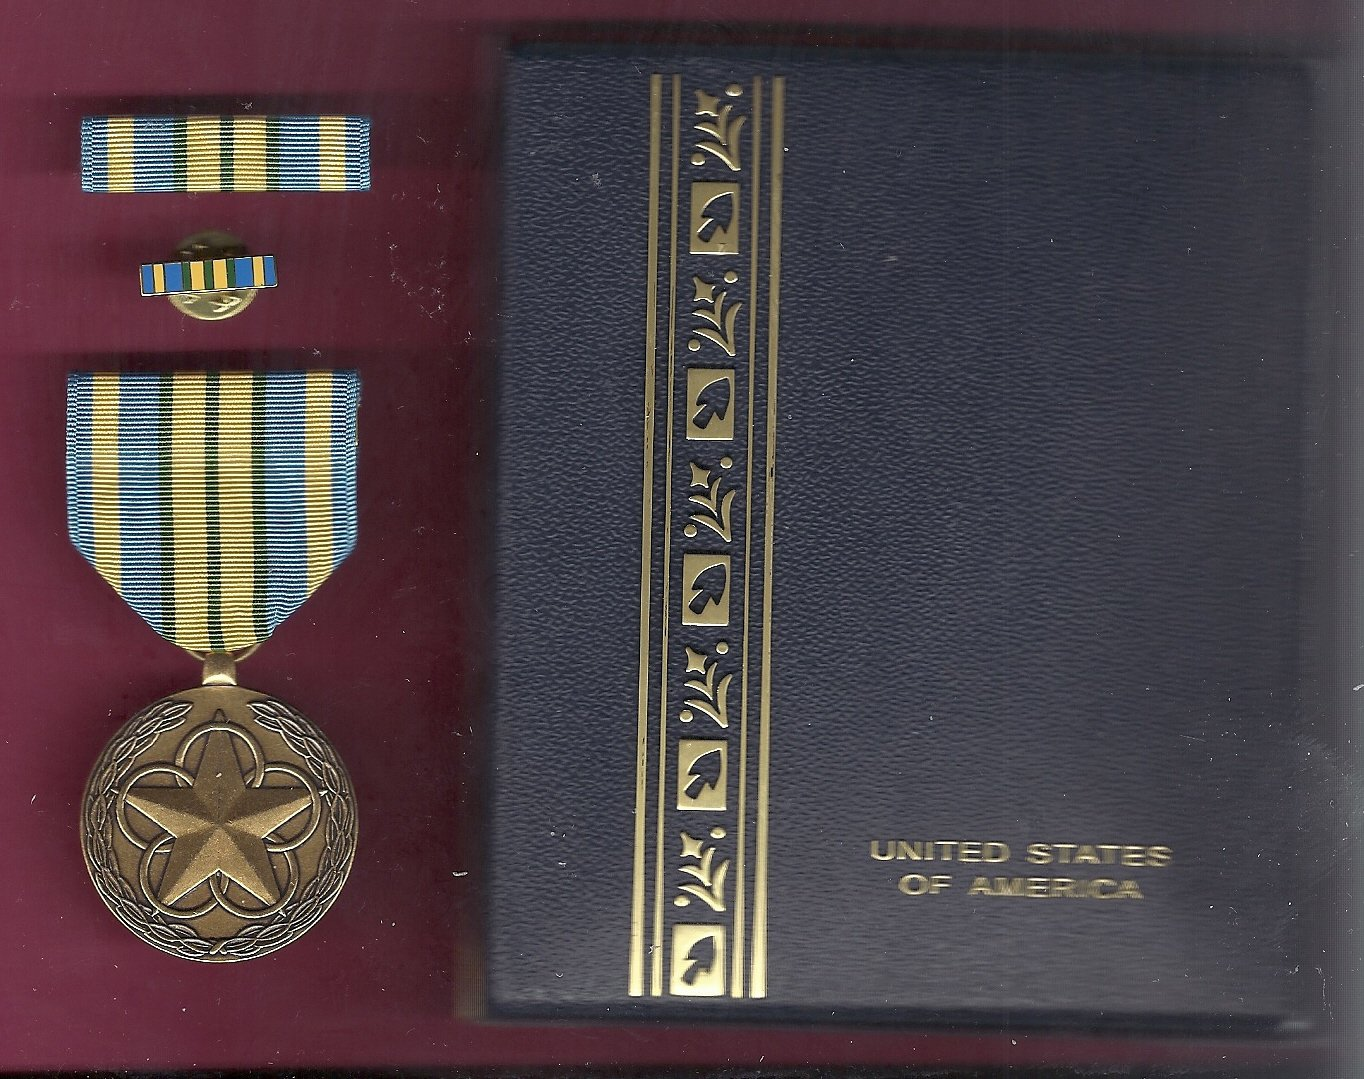 Outstanding Volunteer Service medal in case with ribbon bar and lapel pin